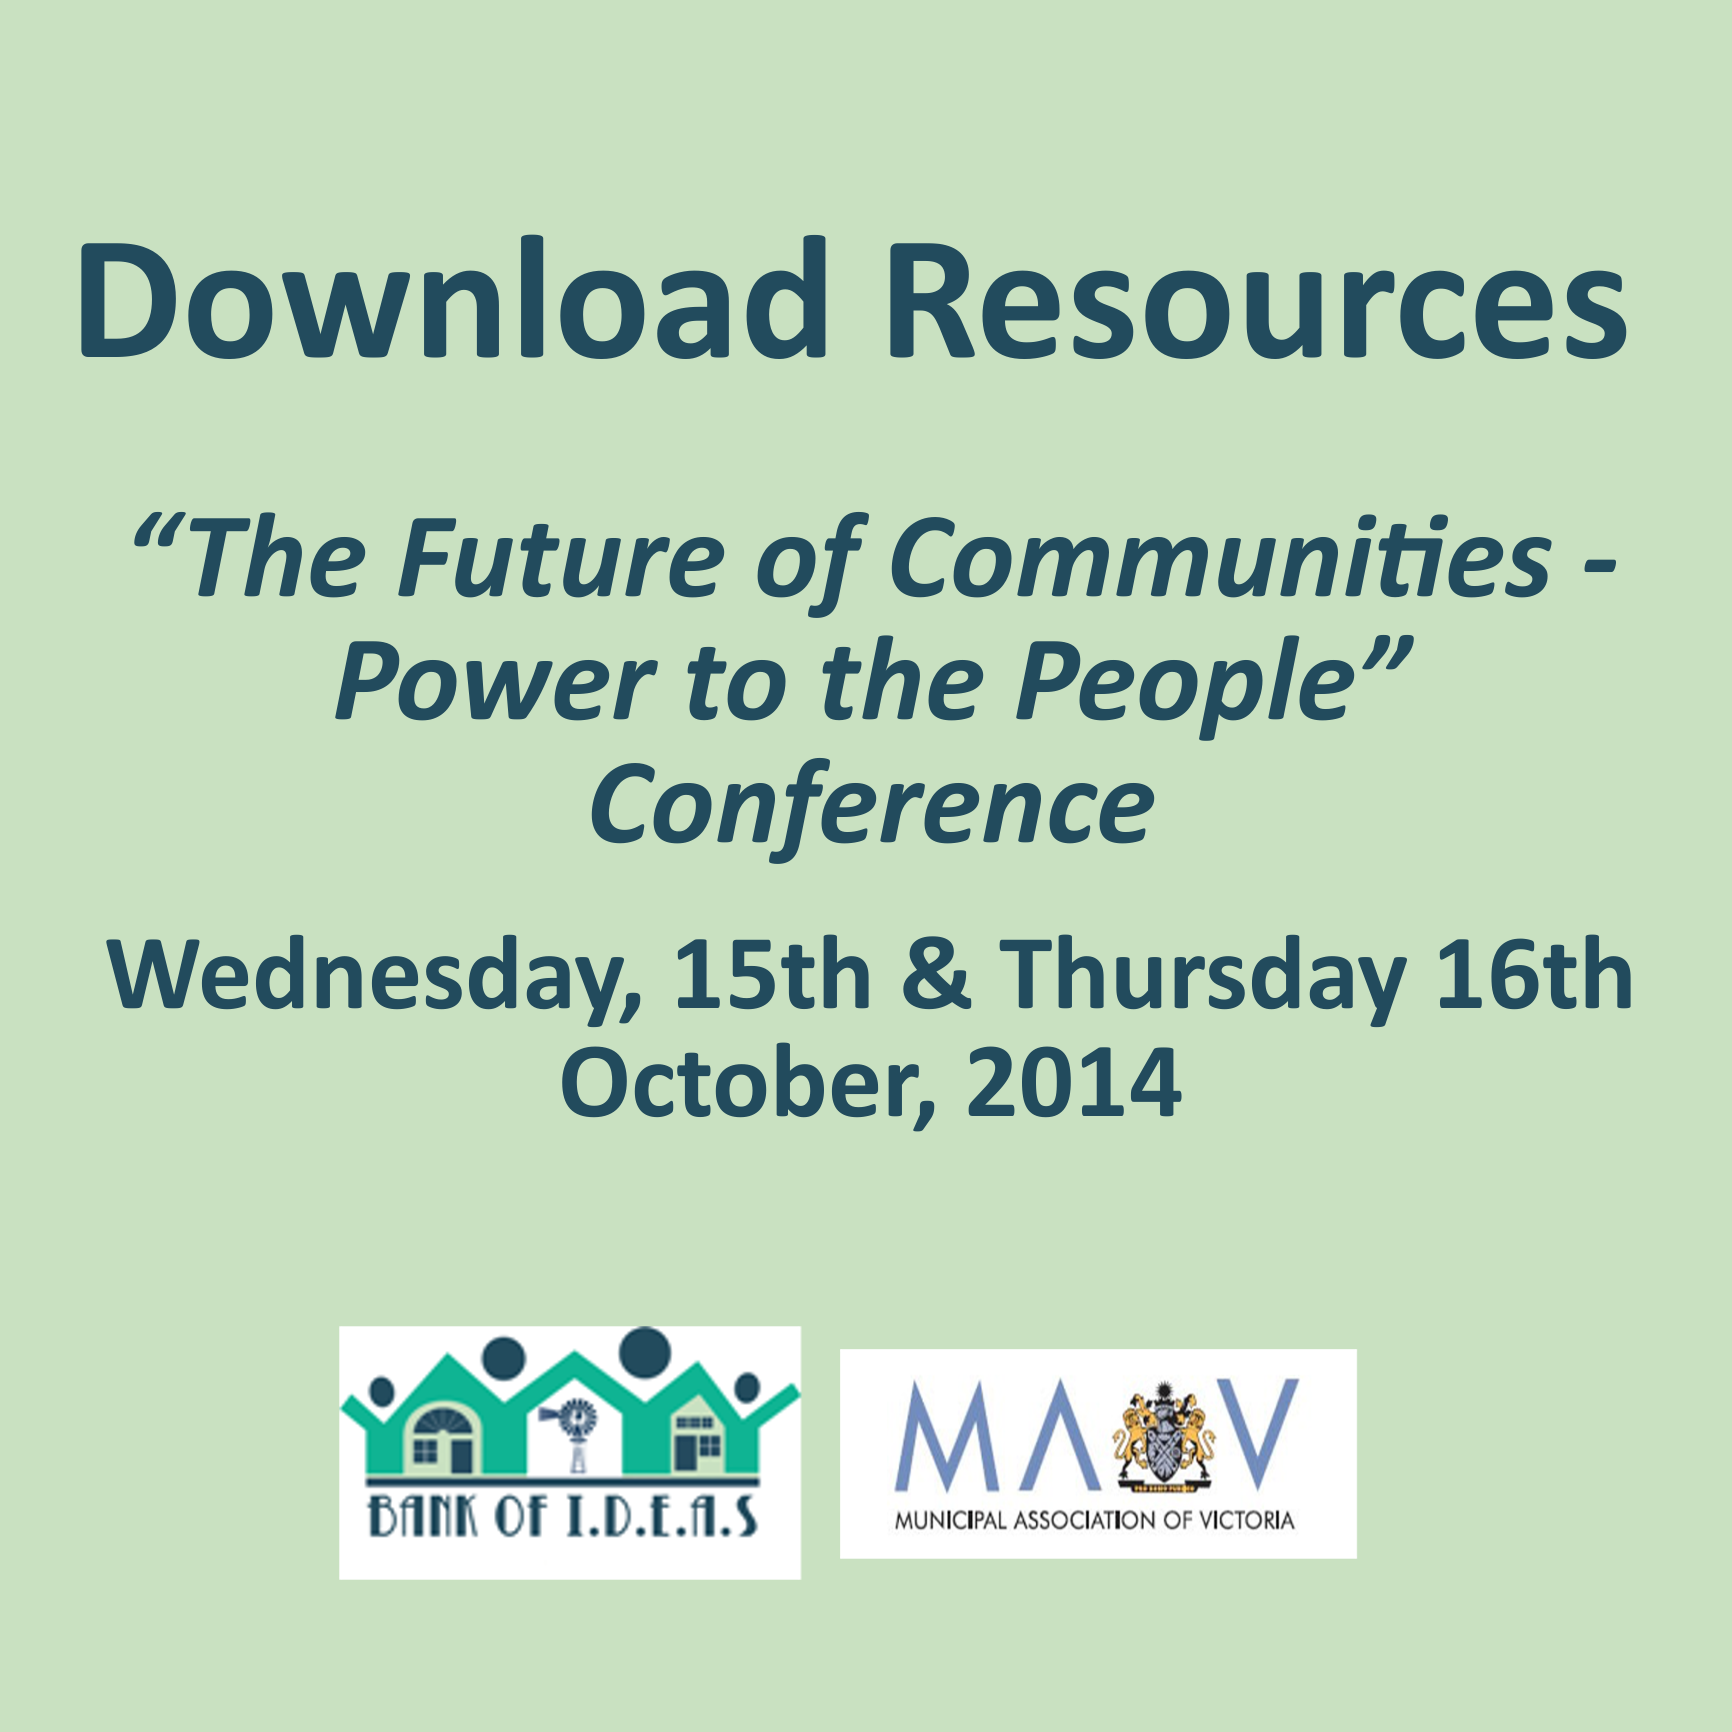 The Future of Communites – Power to the People Conference